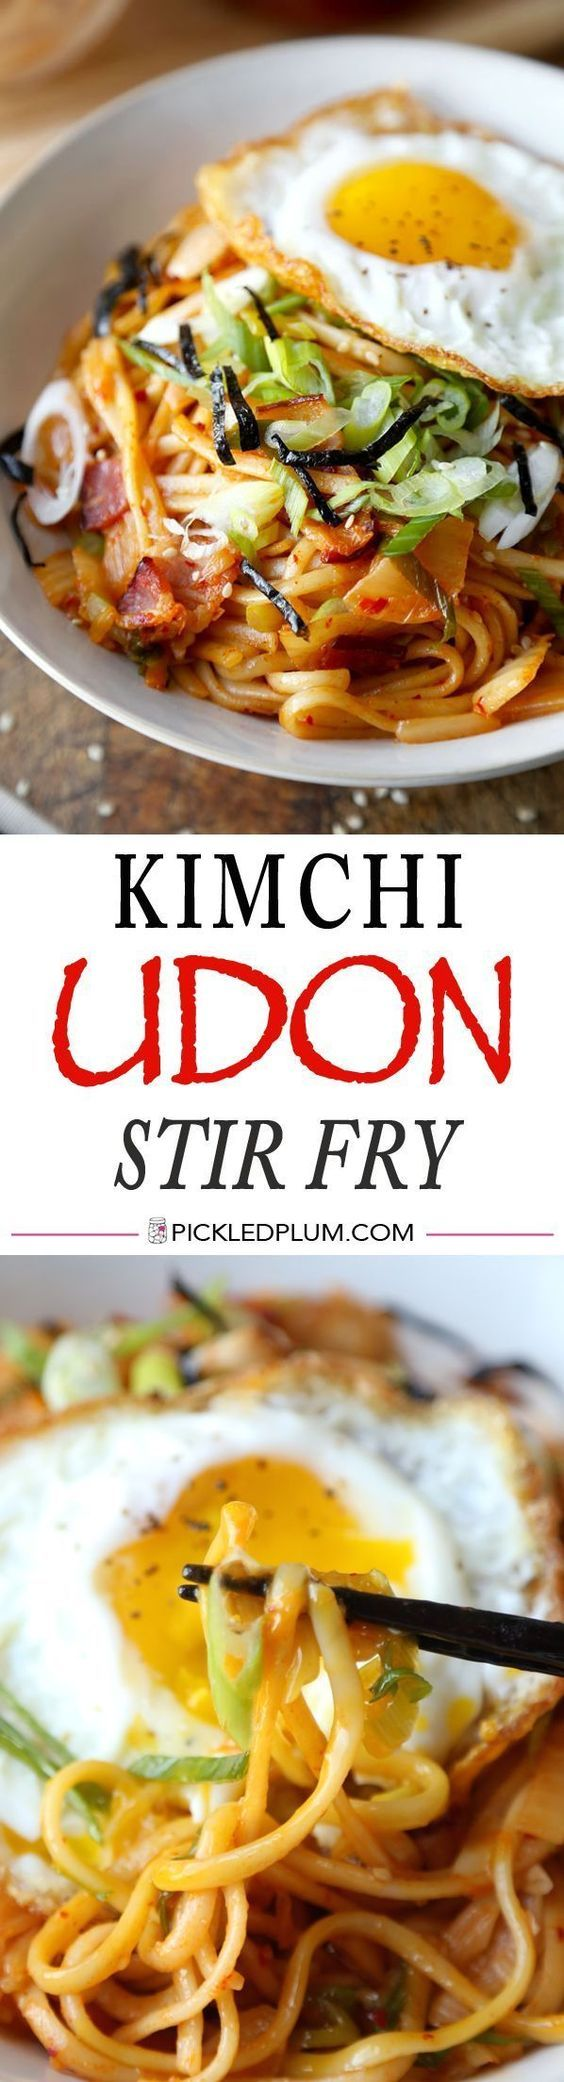 Kimchi Udon Stir Fry - Sizzling bacon and chewy udon noodles tossed in a tangy and spicy kimchi sauce - ready in 15 minutes! Recipe, noodles, spicy, easy, Korean   http://pickleplum.com